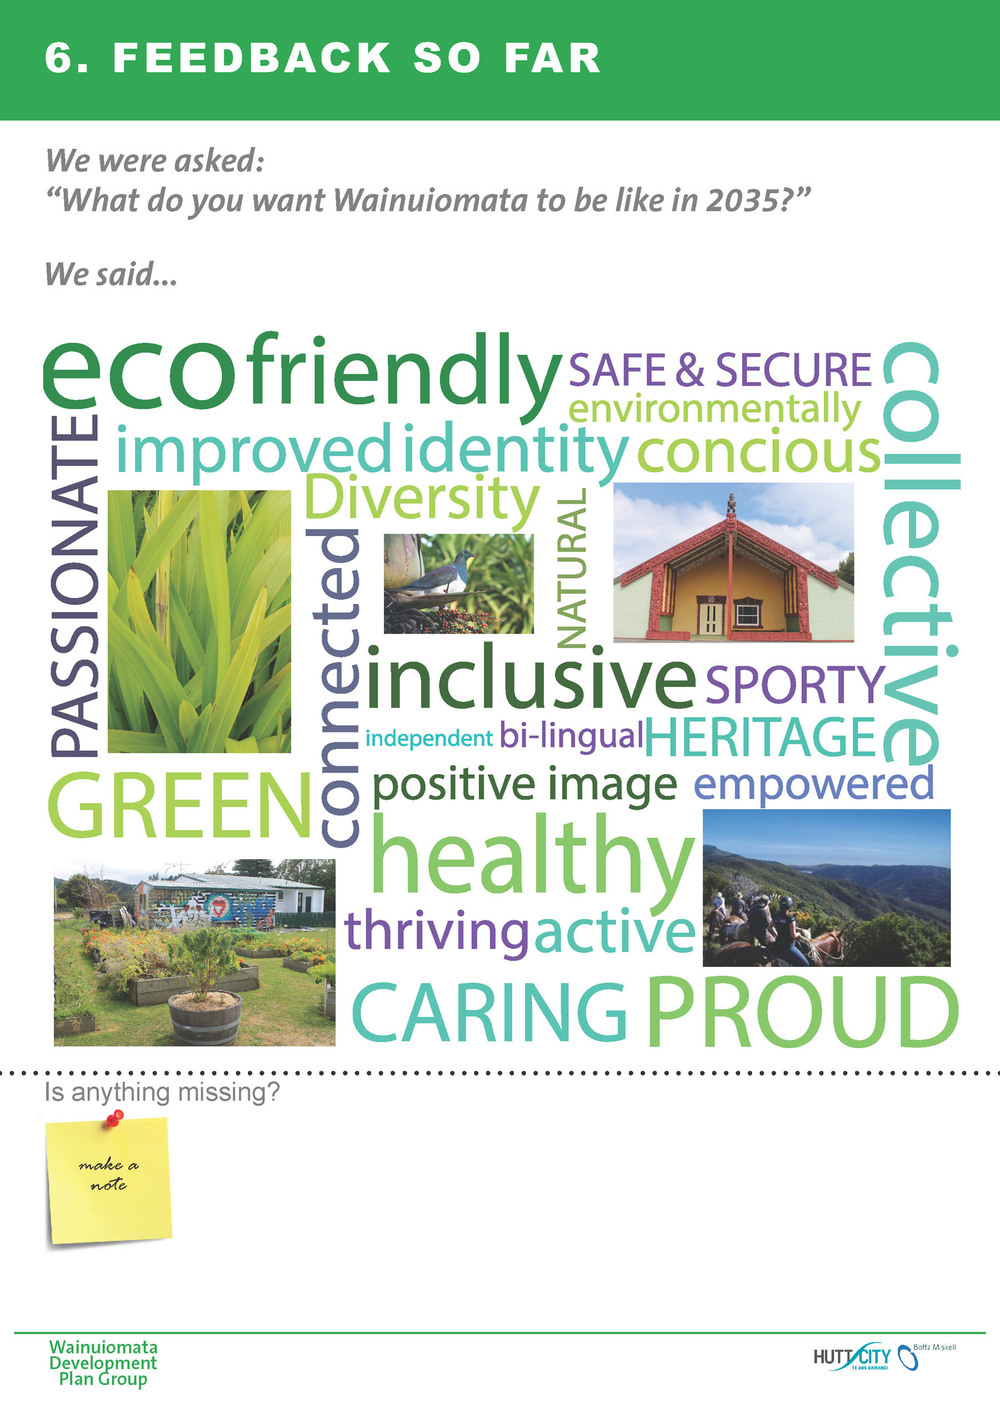 Wainuiomata Development Plan - expo display March 2015_Page_06.jpg